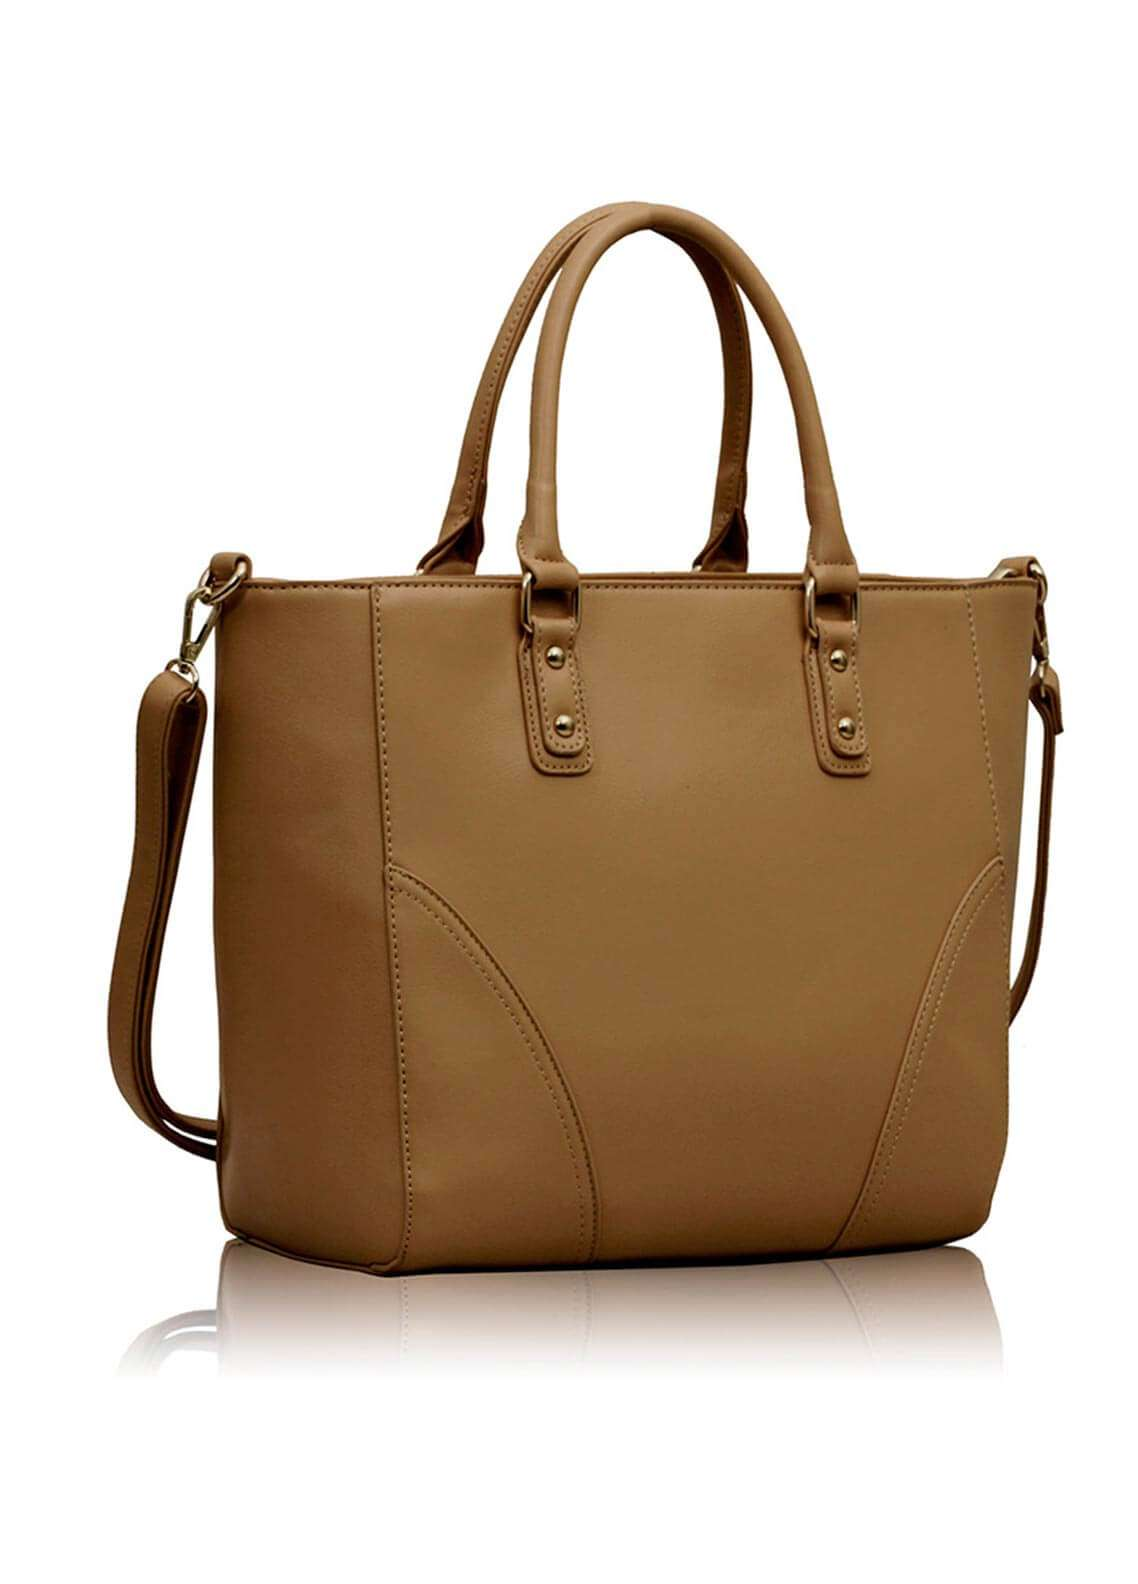 Fashion Only Faux Leather Shoulder  Bags for Woman - Nude